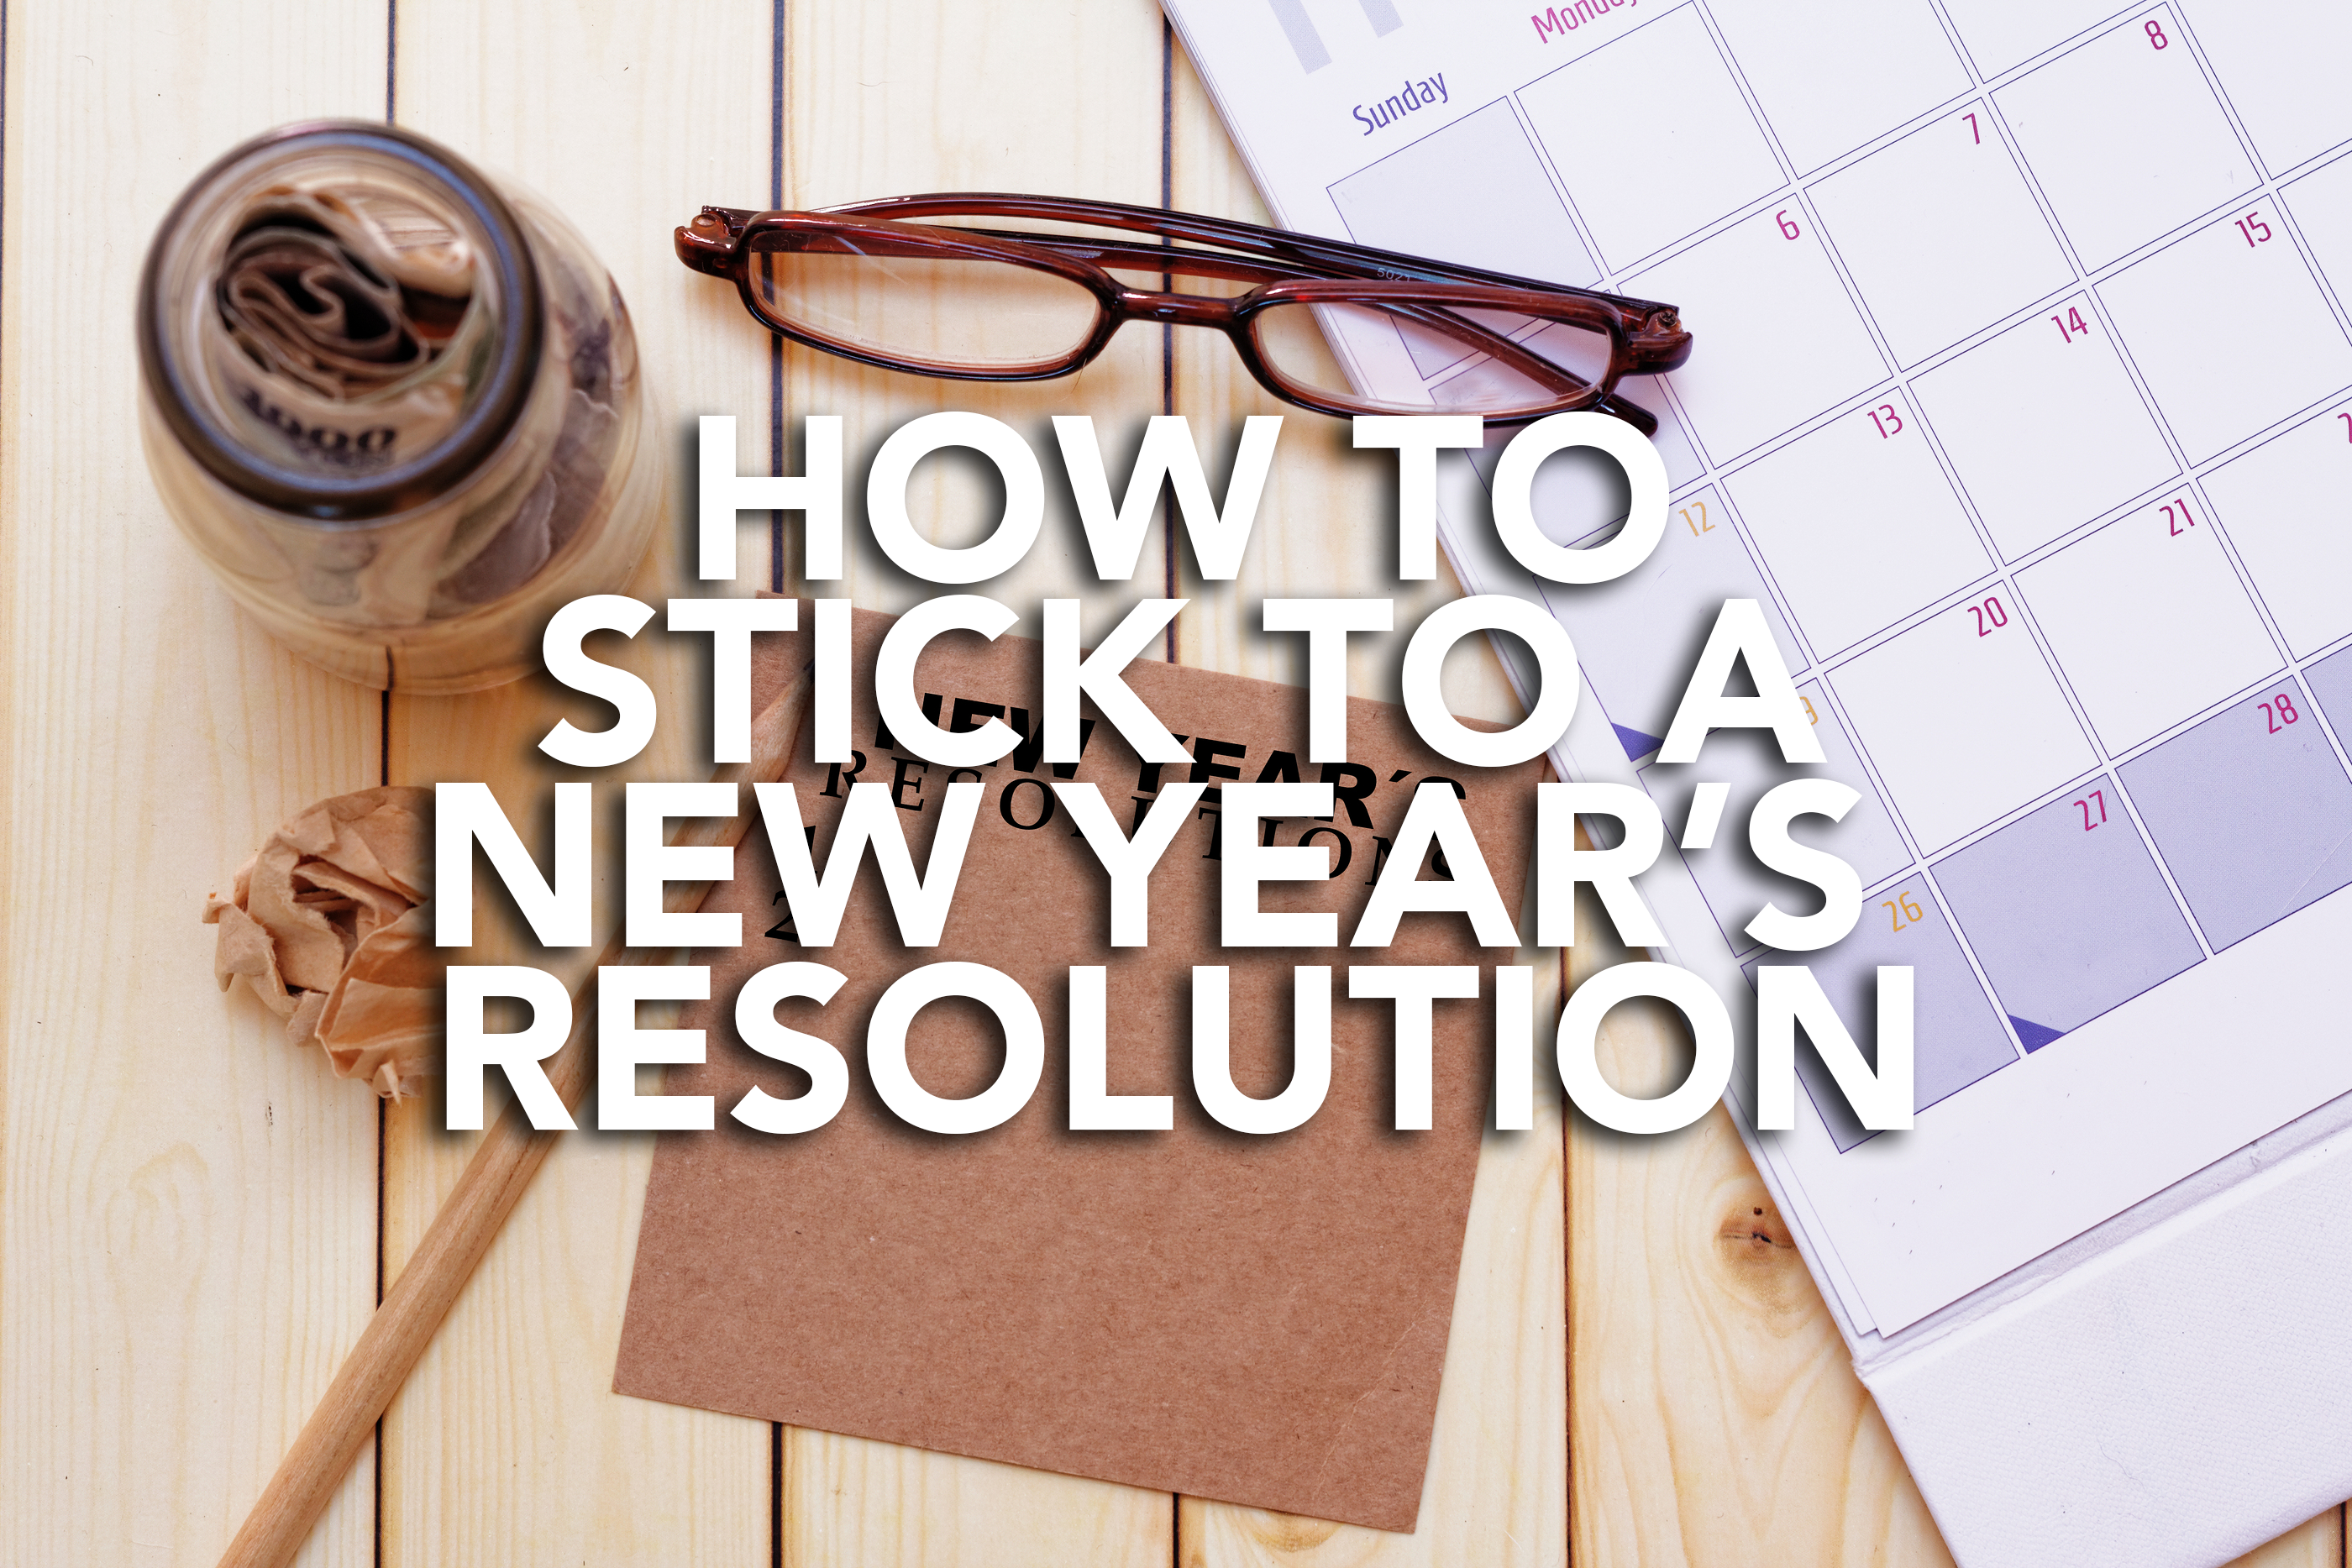 How to Stick to a New Year's Resolution